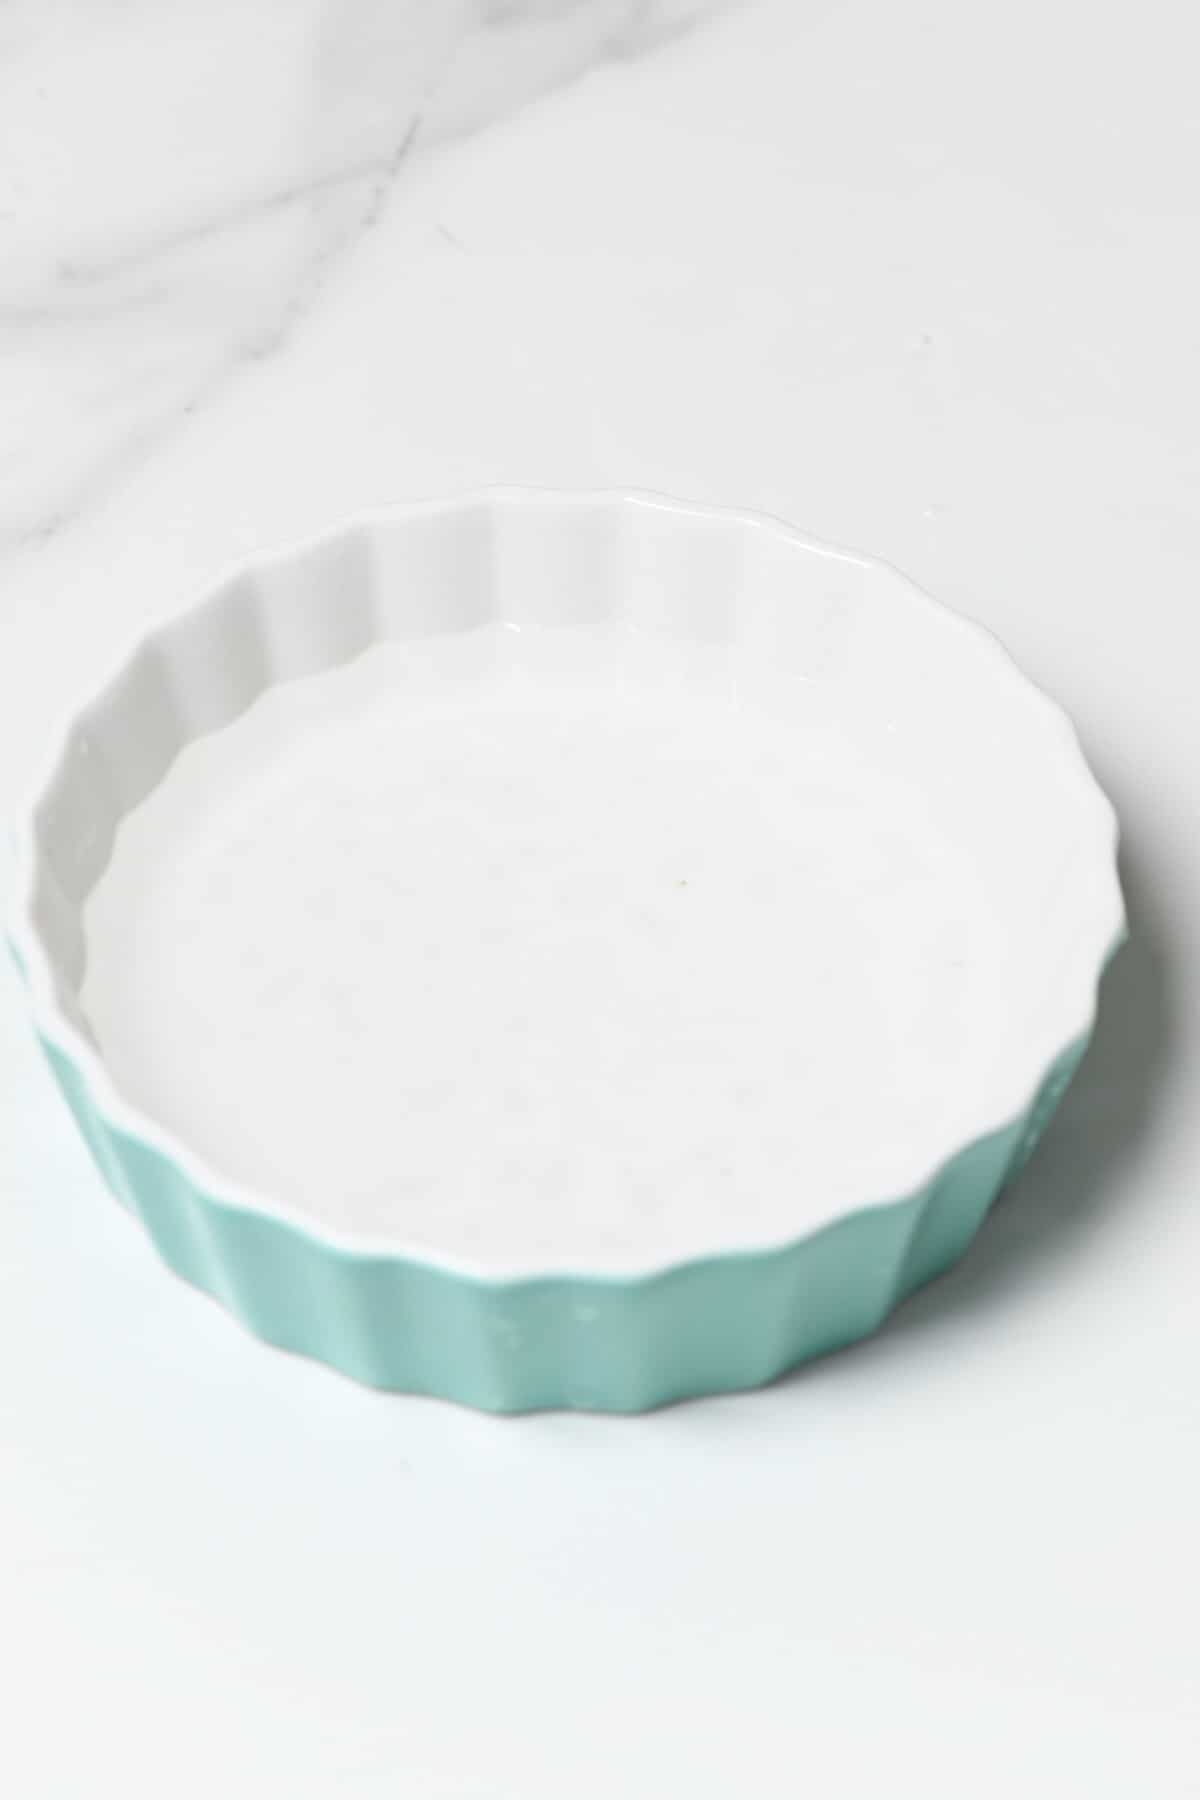 A bowl with salty water